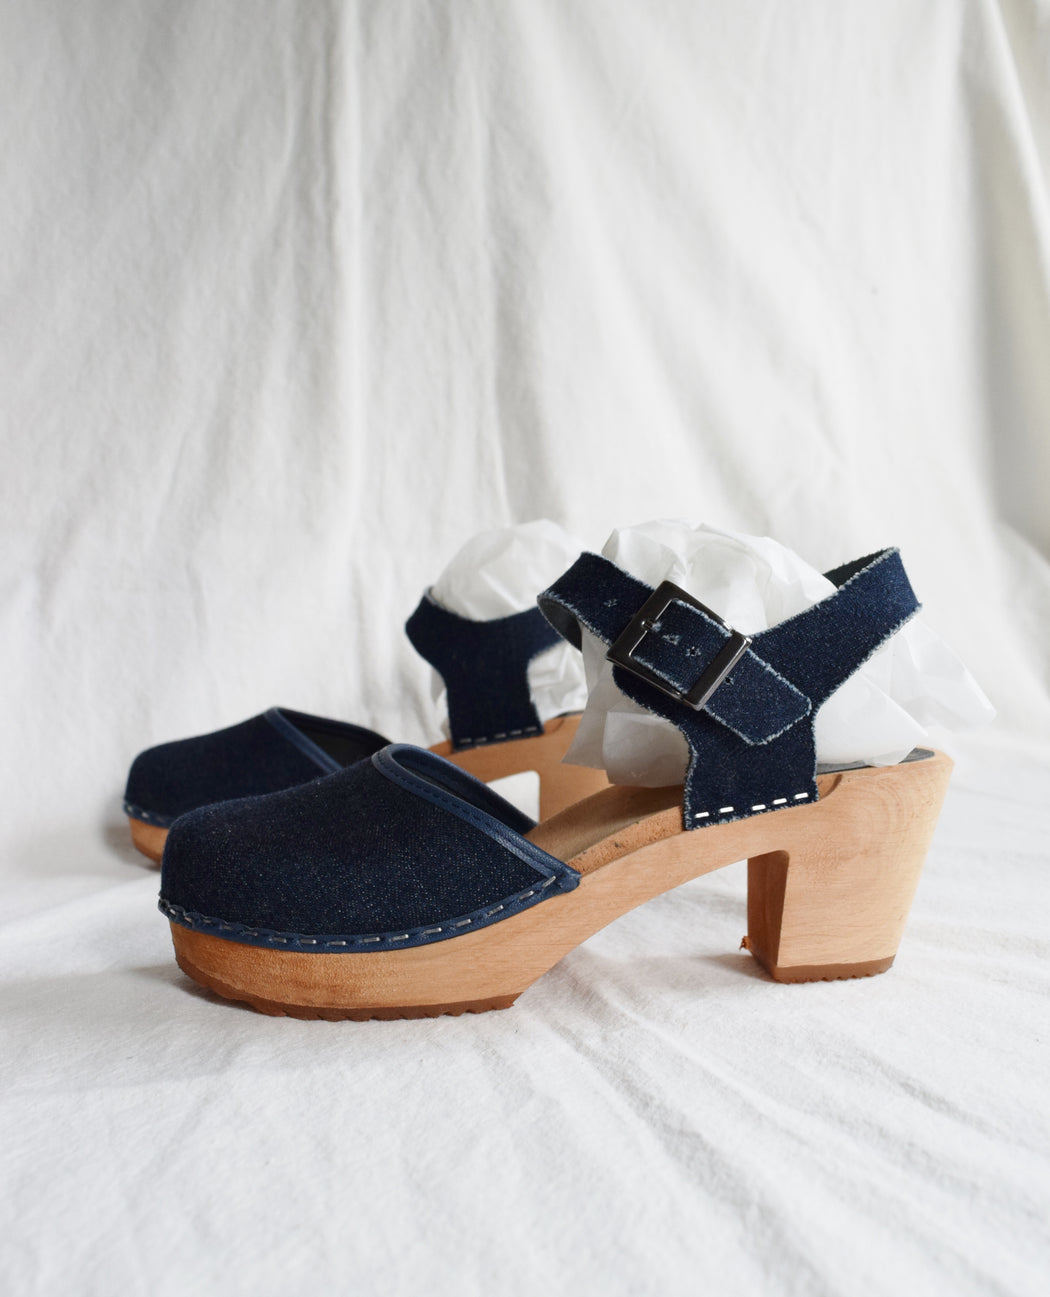 Classic Swedish Clogs in Denim and Wood | US 8 / EU 39